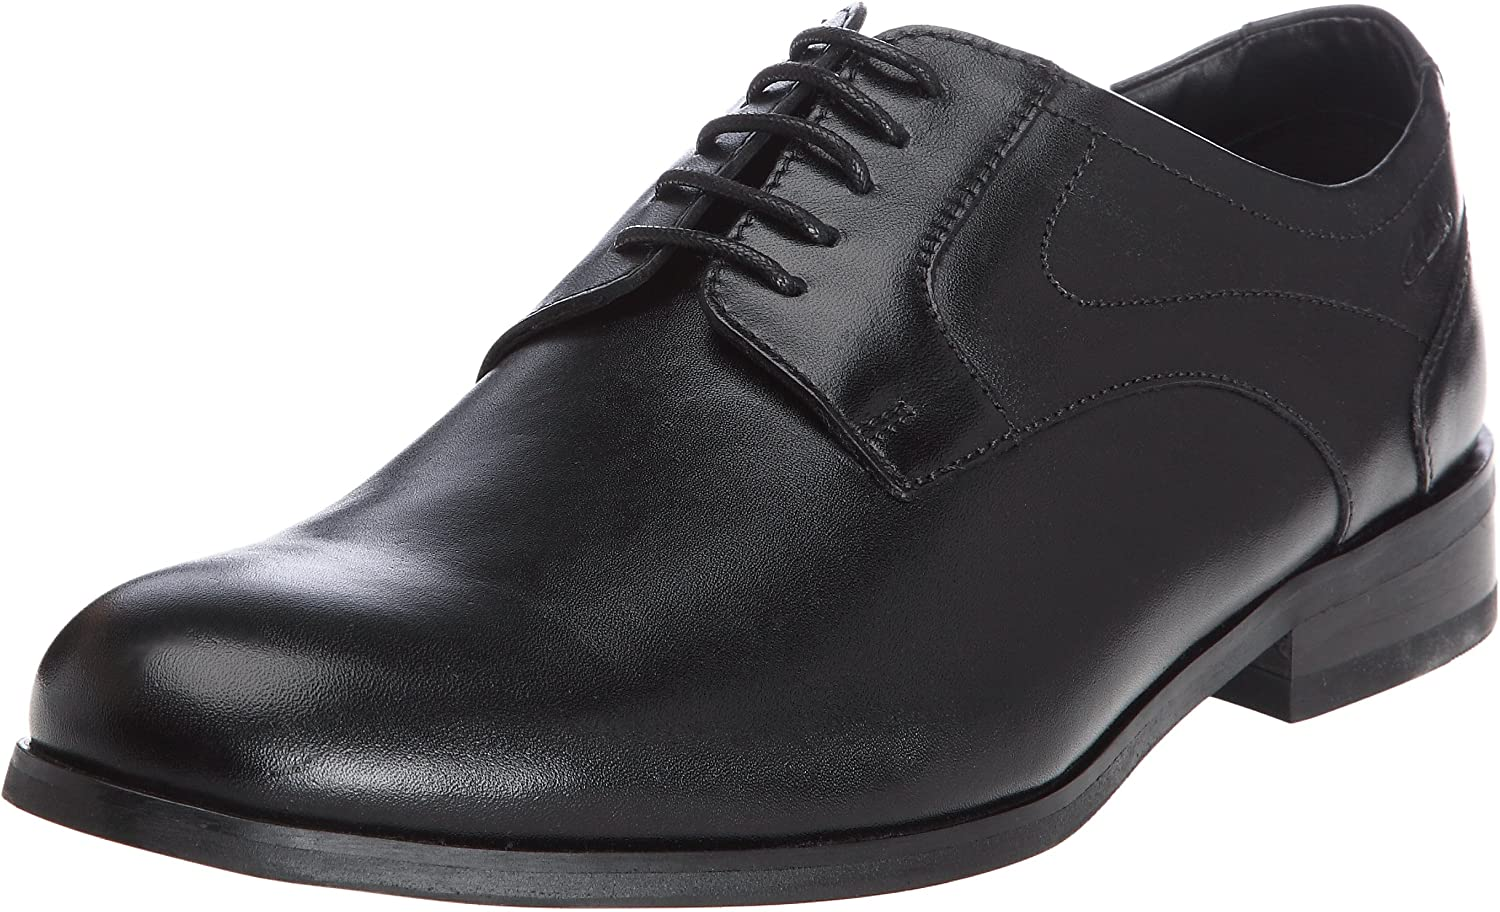 Clarks Brint Plain, Men's shoes